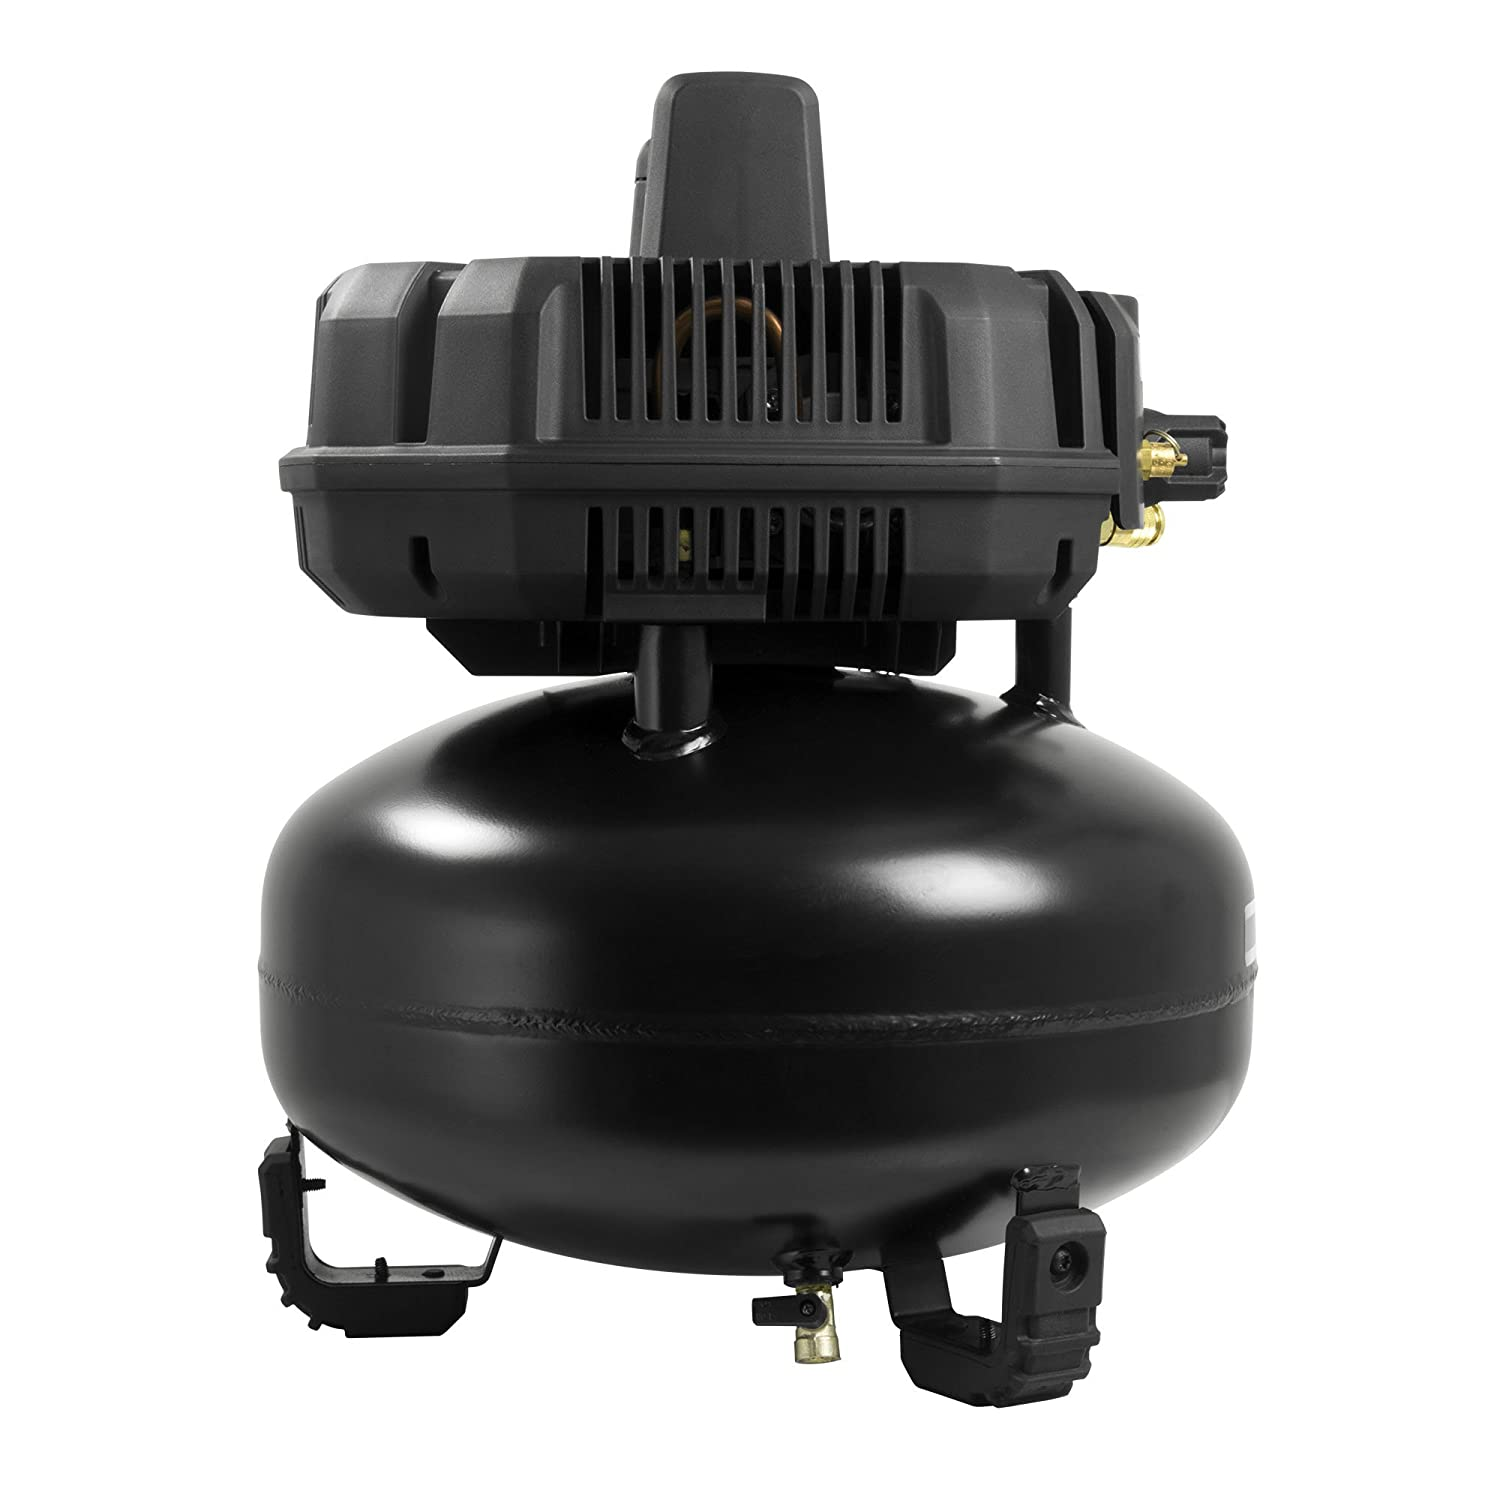 The pump and motor are also covered to ensure durability even on rough job sites.